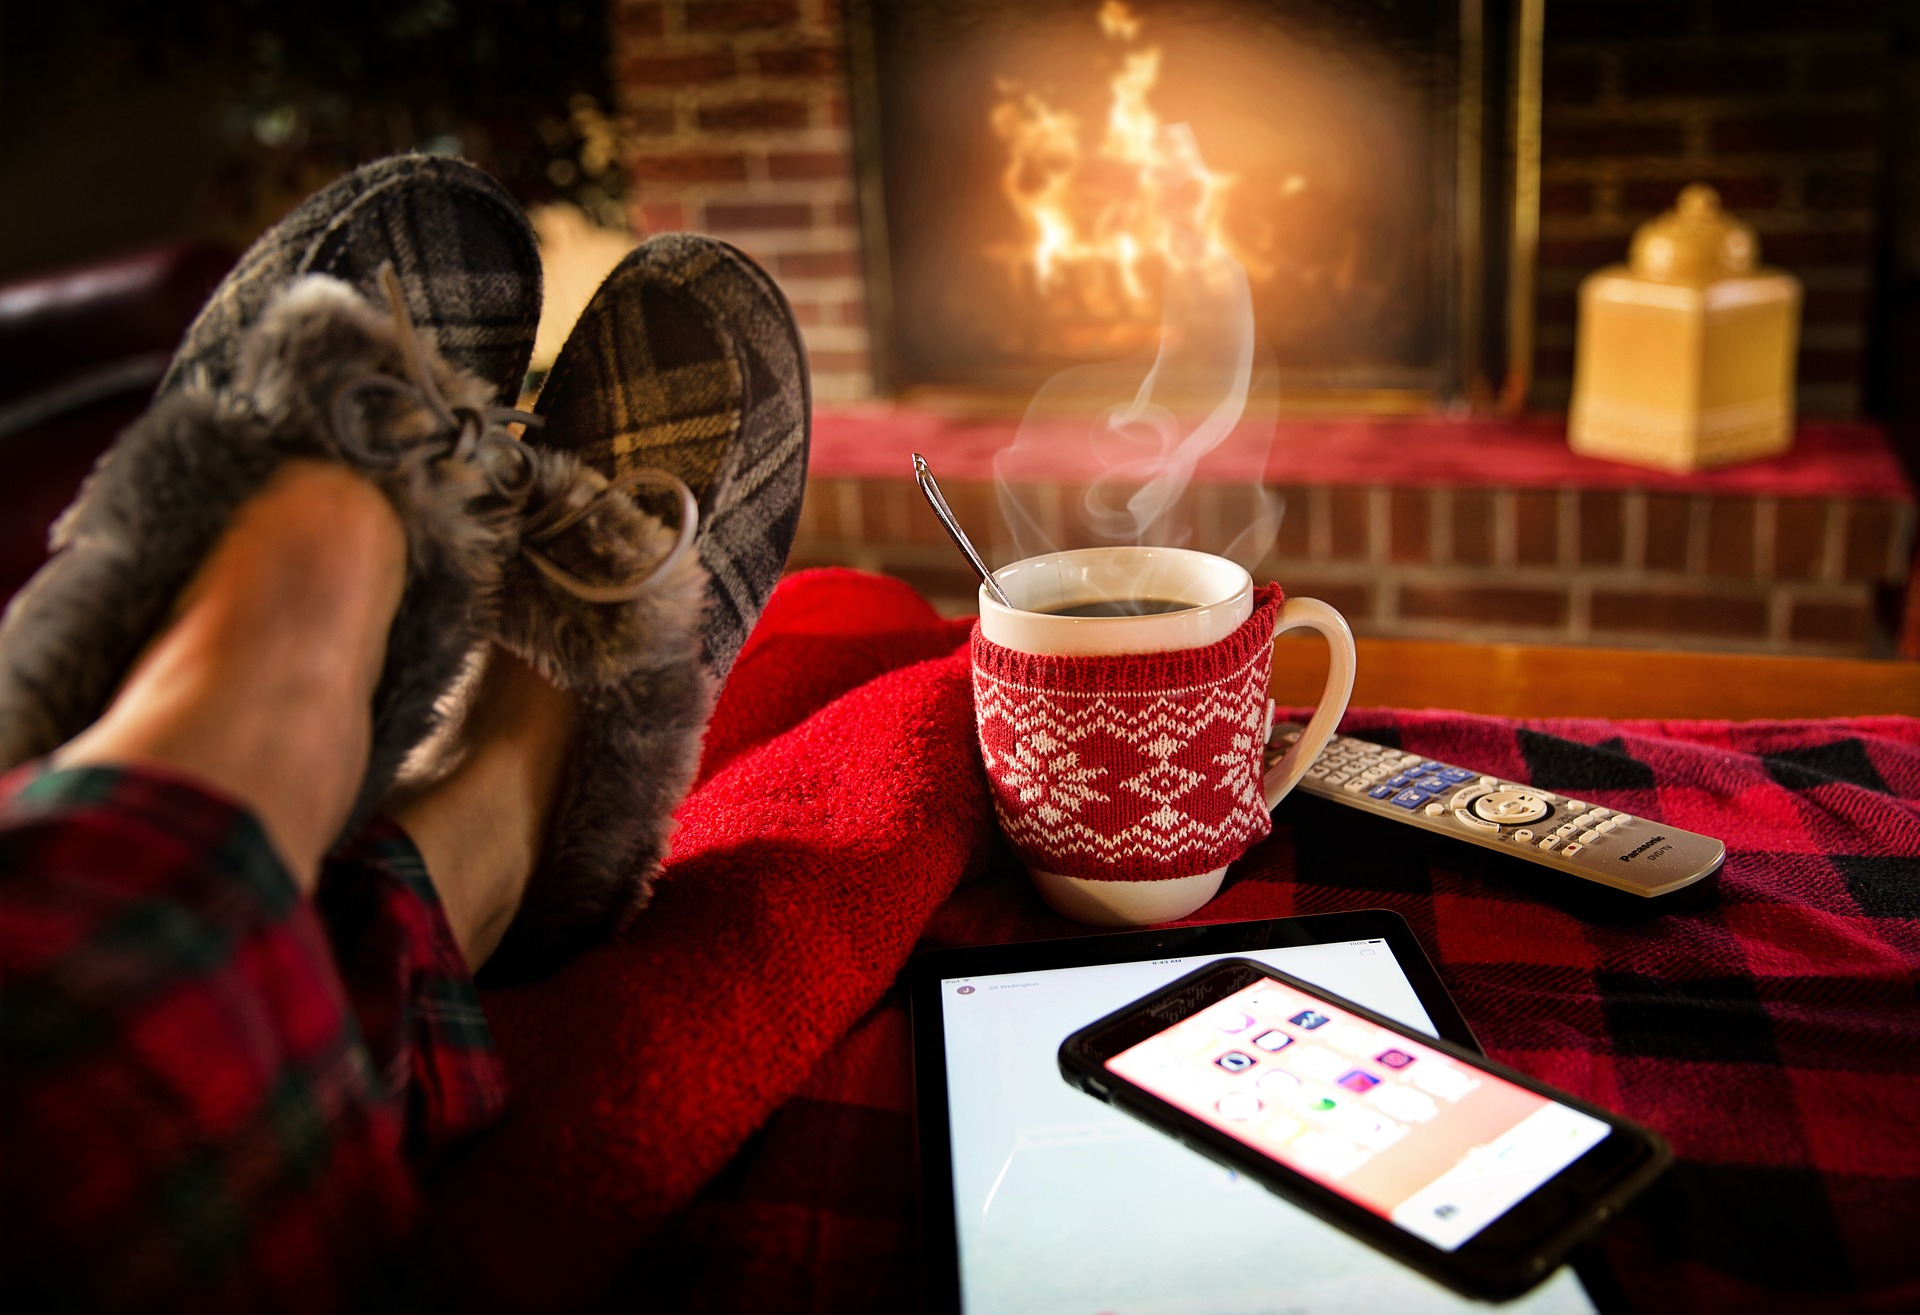 feet in slippers on table in front of fireplace with mug